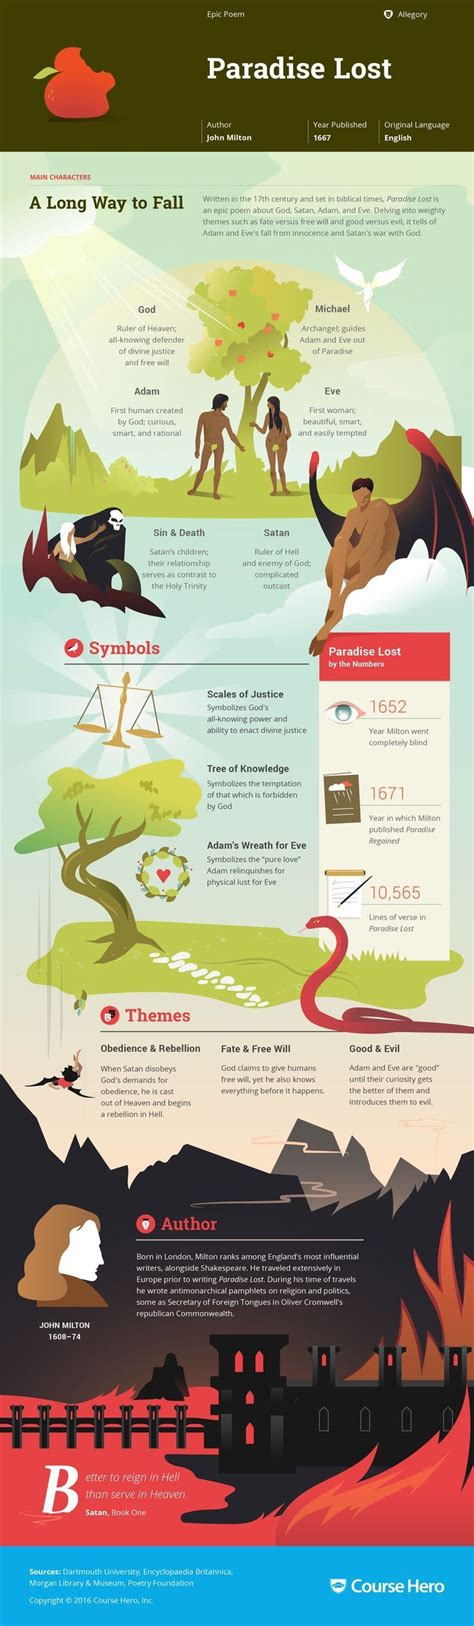 themes paradise lost book 9 best 25 paradise lost book 9 ideas on pinterest